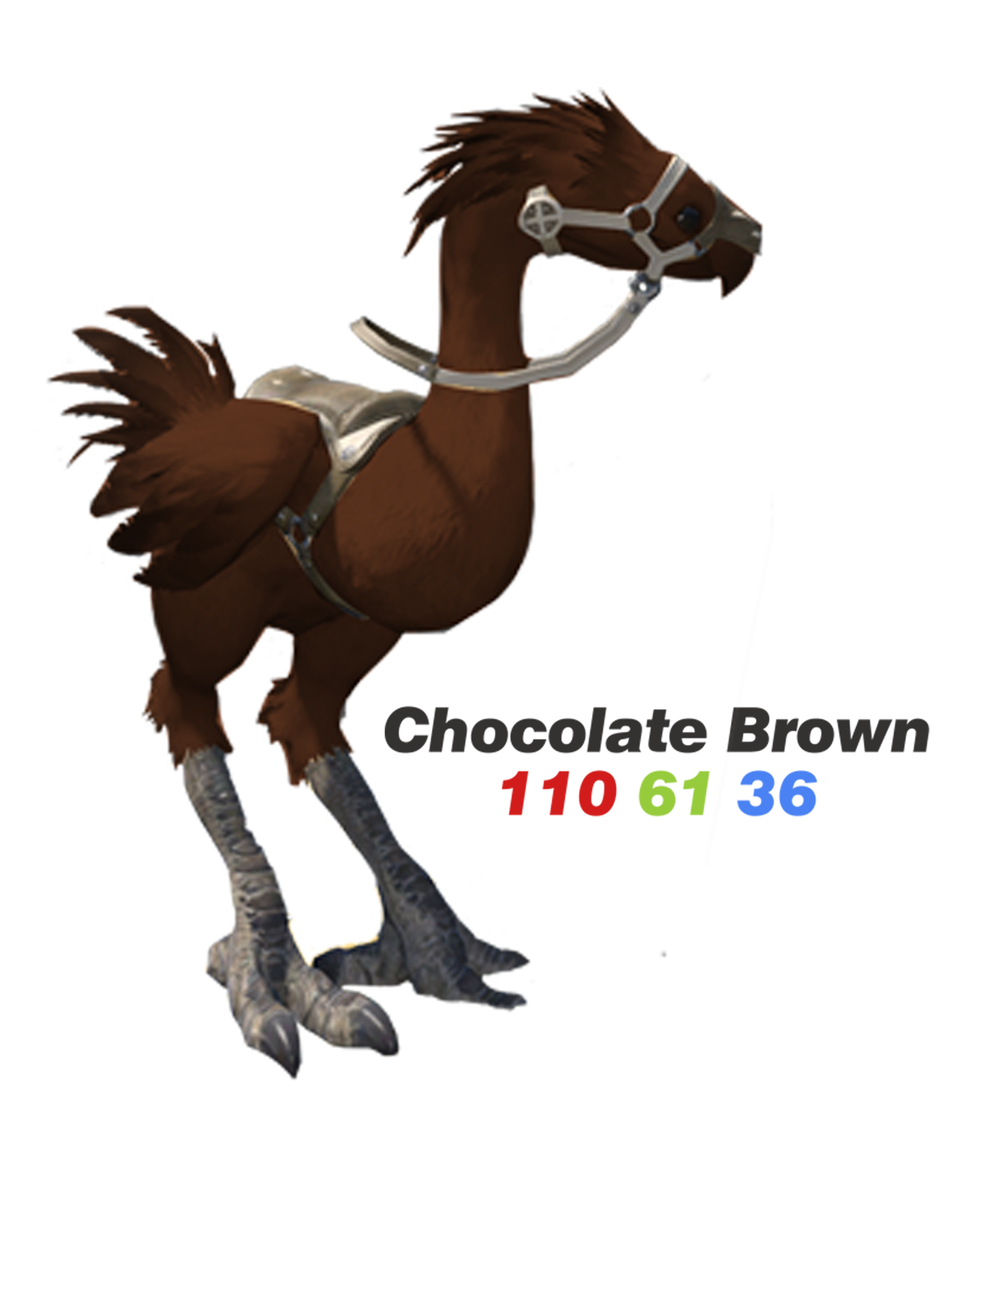 ChocBrown.png